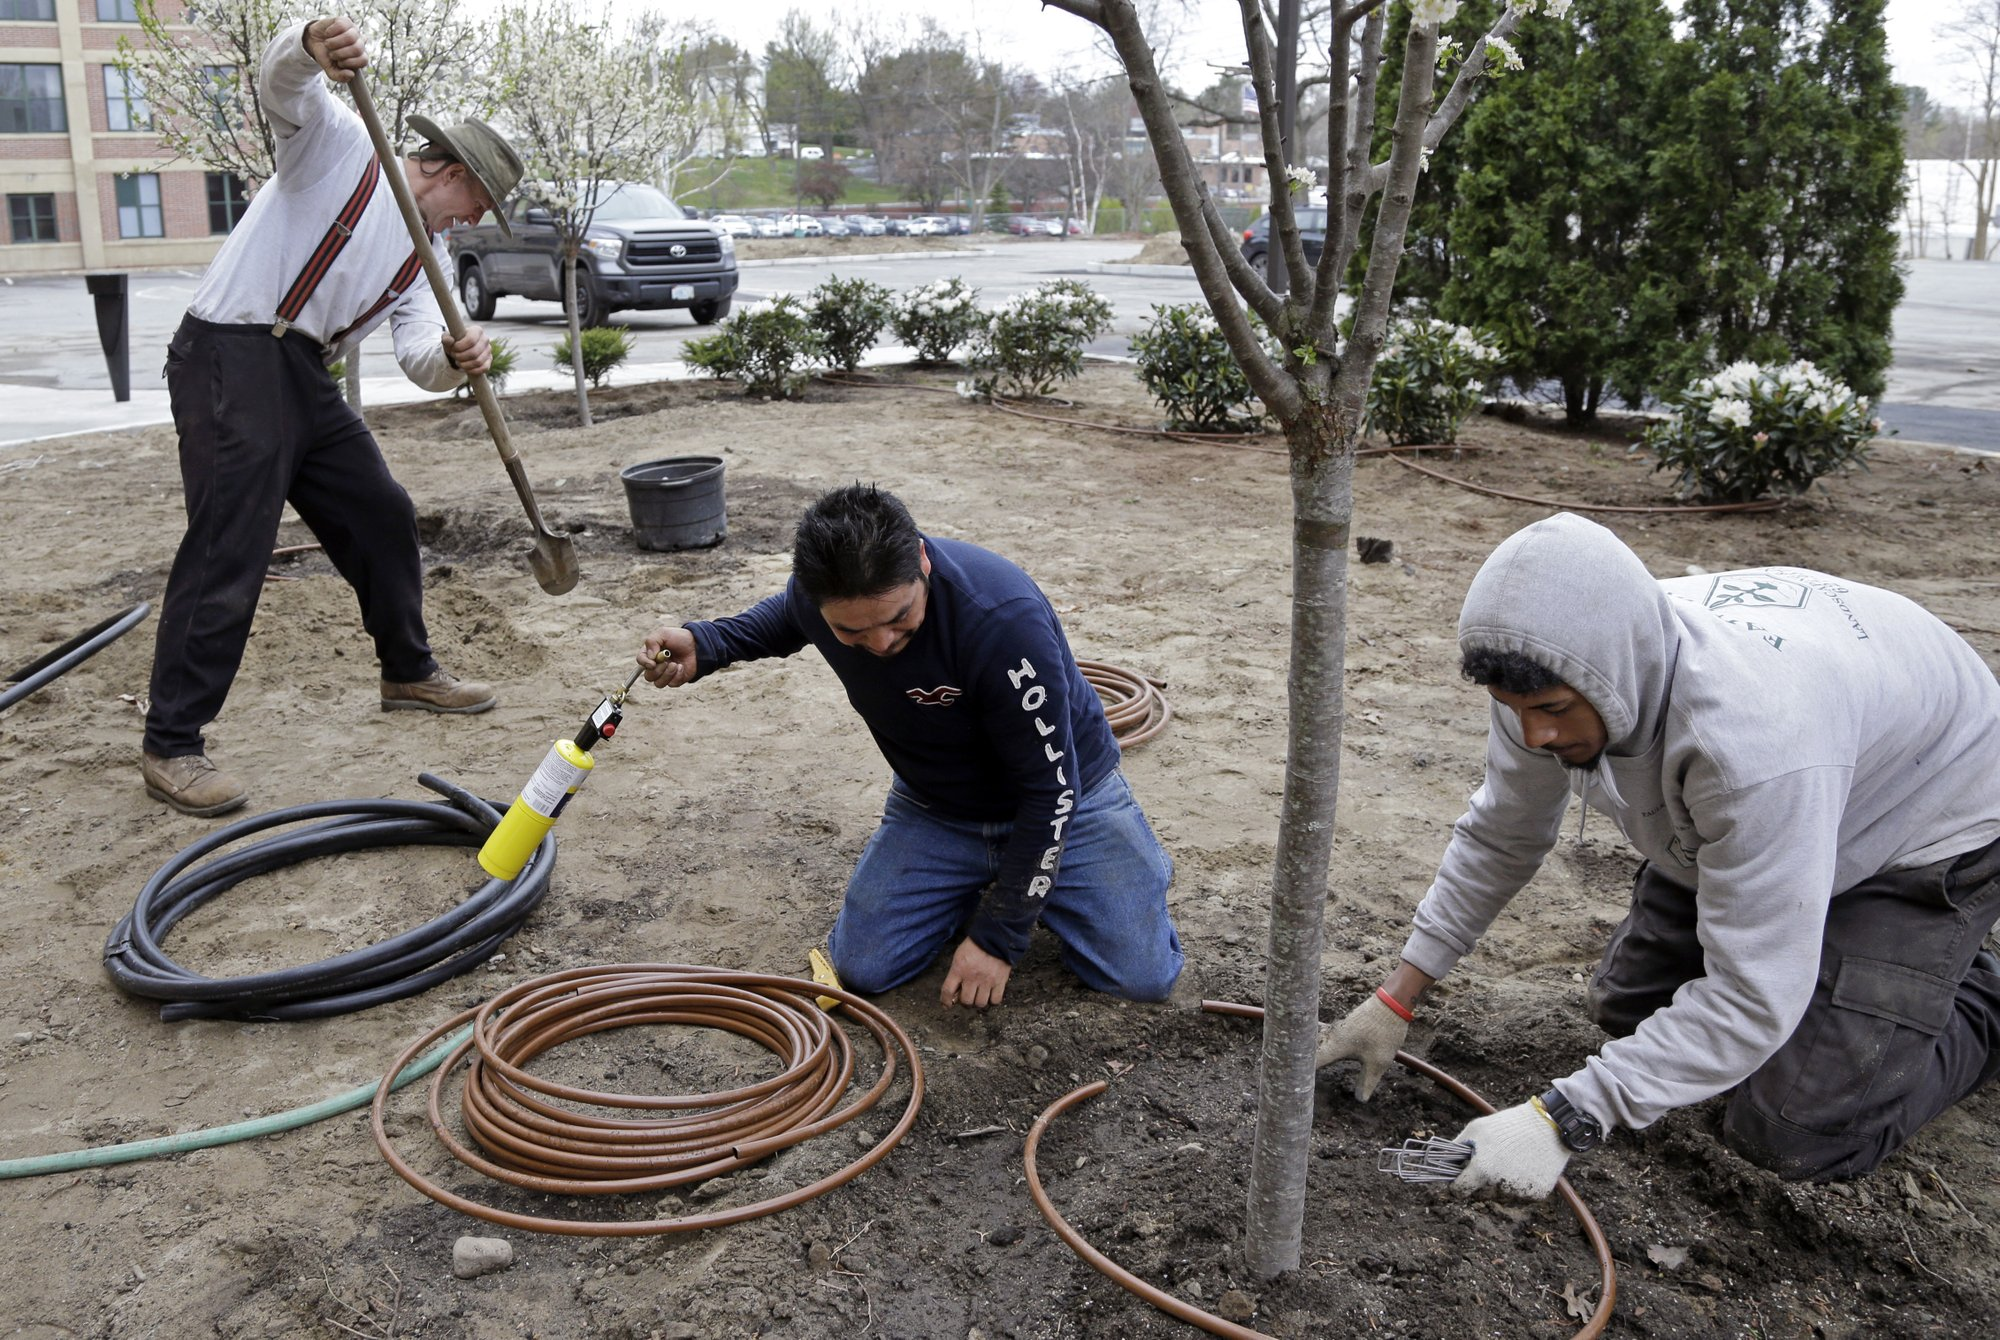 In this April 25, 2017 photo, Stephen Faulkner, far left, owner of Faulkner's Landscaping & Nursery, installs an irrigation system alongside workers Gonsalo Garcia, center, and Jalen Murchison, right, at a landscape project in Manchester, N.H. The Trump Administration is making 30,000 more temporary visas available for seasonal work through the end of September. According to a copy of the rule obtained by The Associated Press, the visas, known as H2-Bs, will go to foreign workers who have held them before over the last three fiscal years for jobs like picking crabs, shucking oysters or seasonal hotel work. They will become available when the temporary rule is published as early as Tuesday. (AP Photo/Elise Amendola)